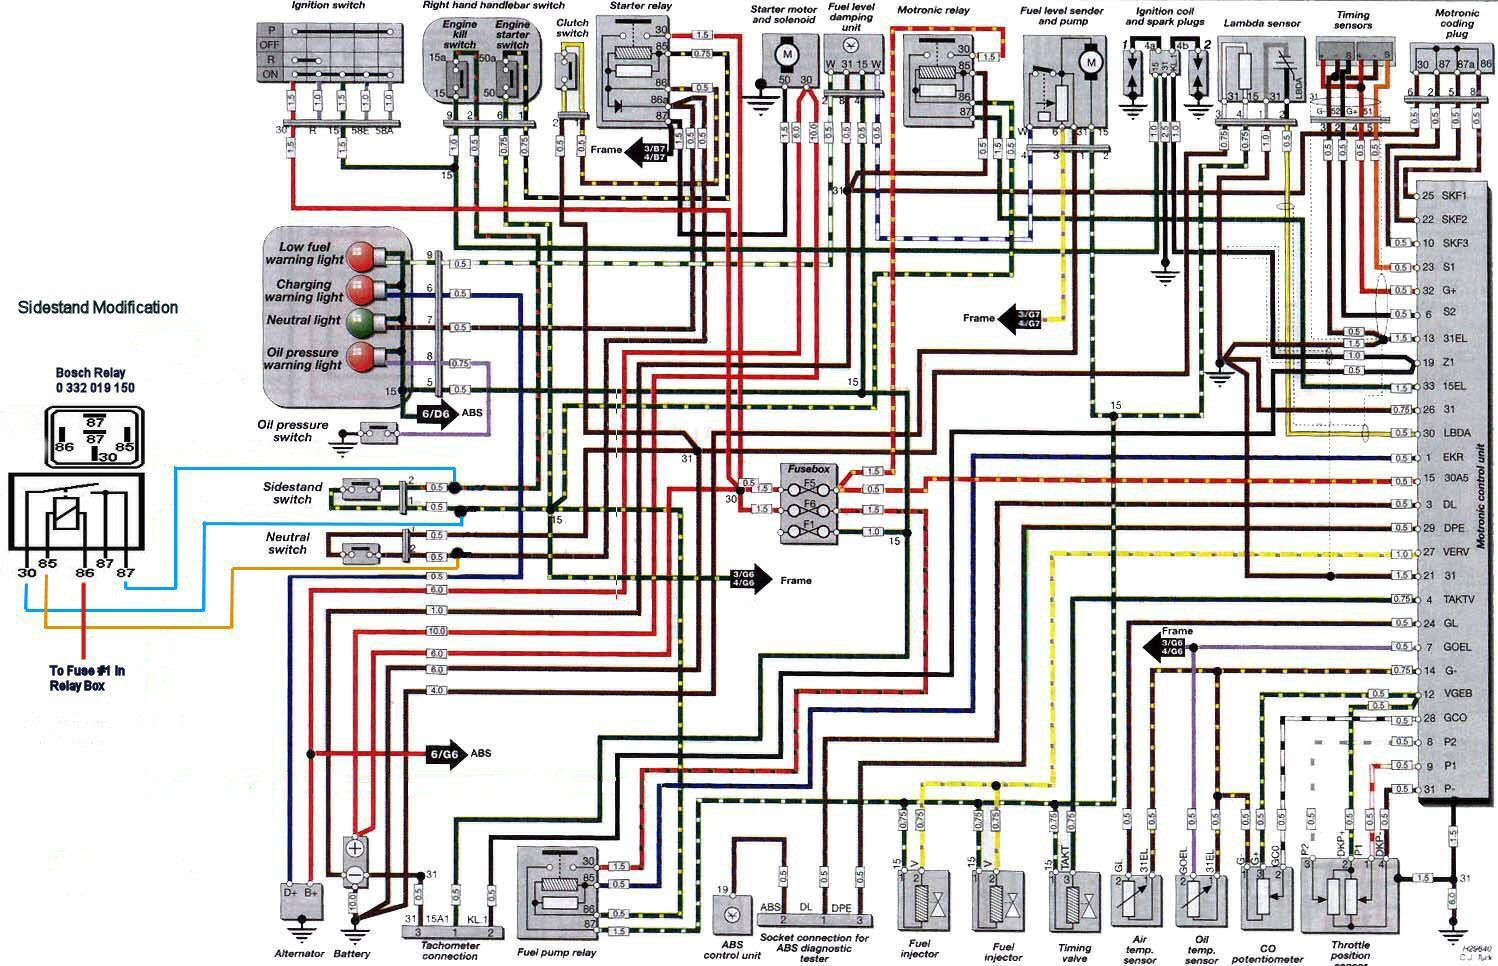 cfa26548fff674929dbaca6a9b06c2b3 bmw r1150r electrical wiring diagram 1 bmv pinterest bmw r100rs gauge wiring diagram at edmiracle.co